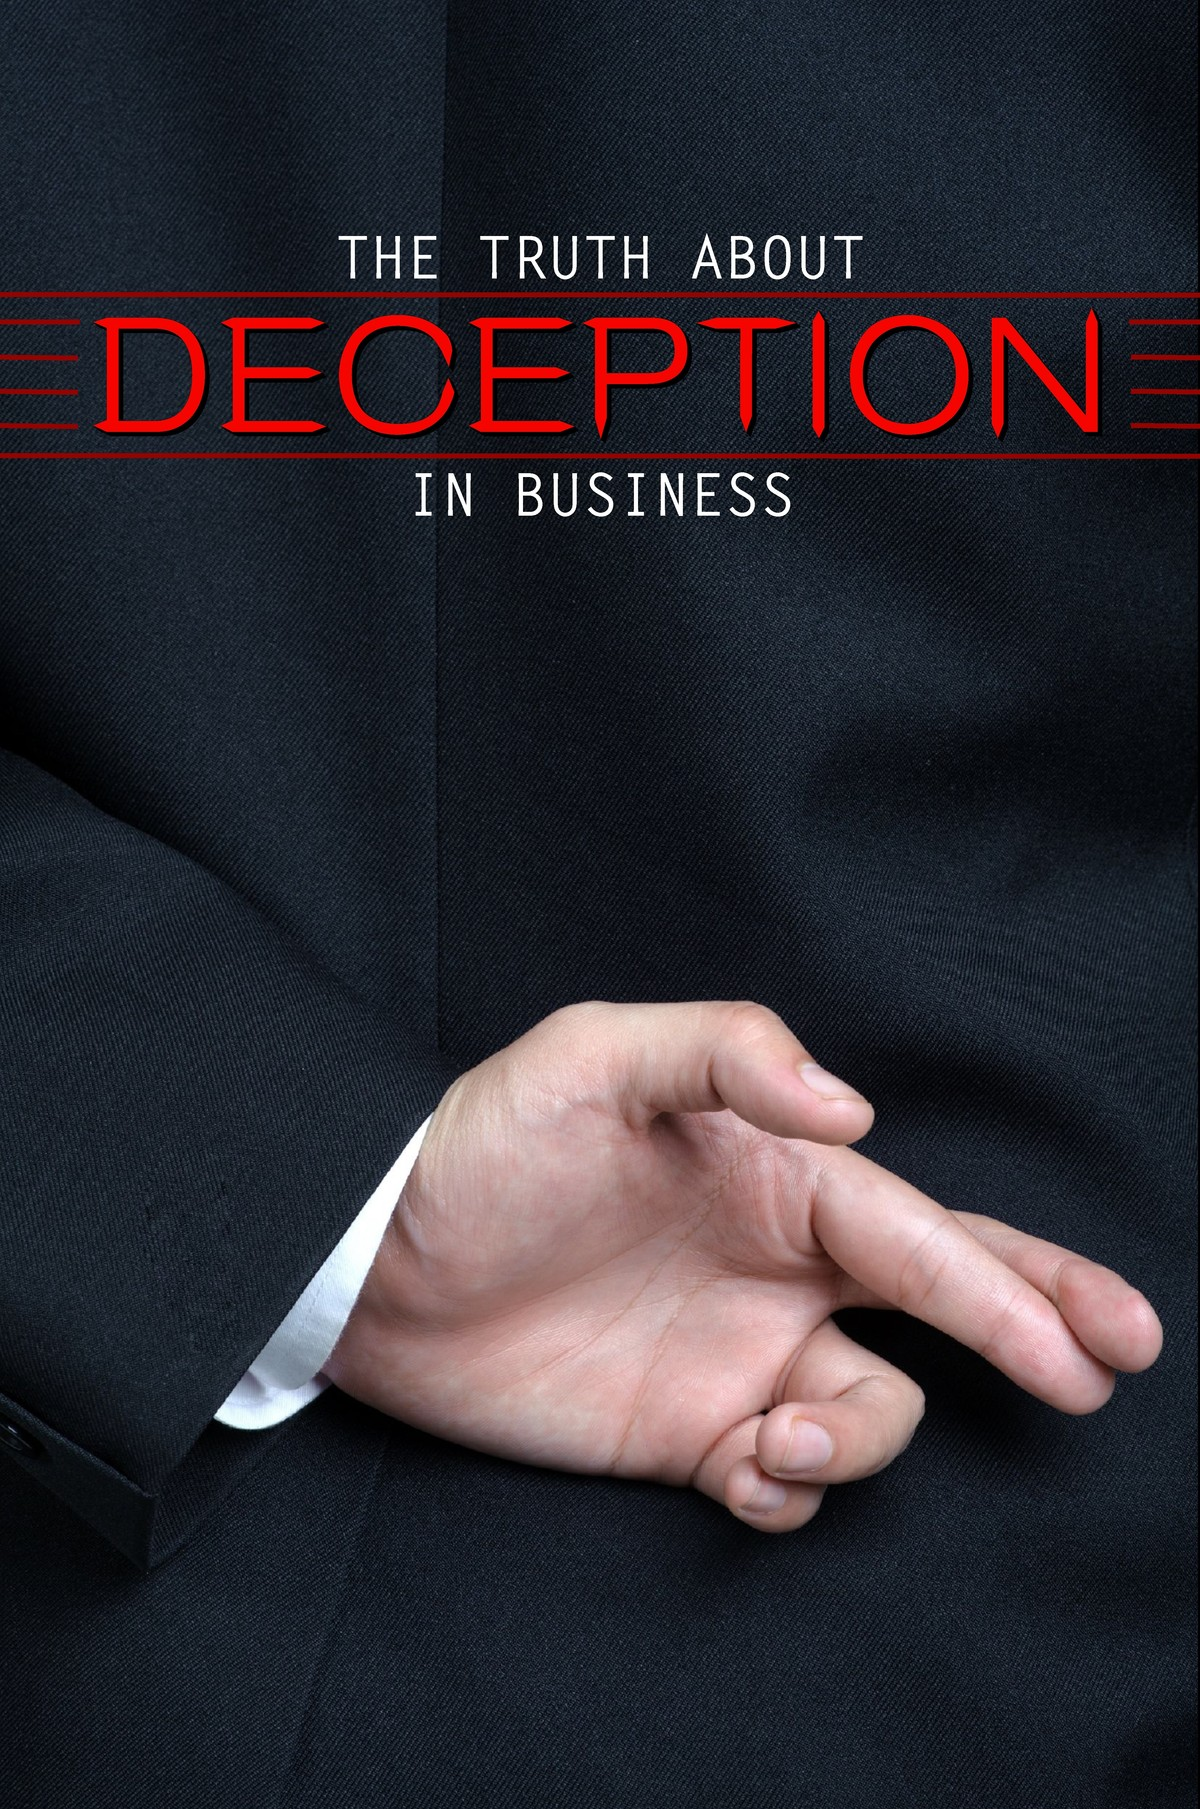 L7029 - The Truth About Deception in Business